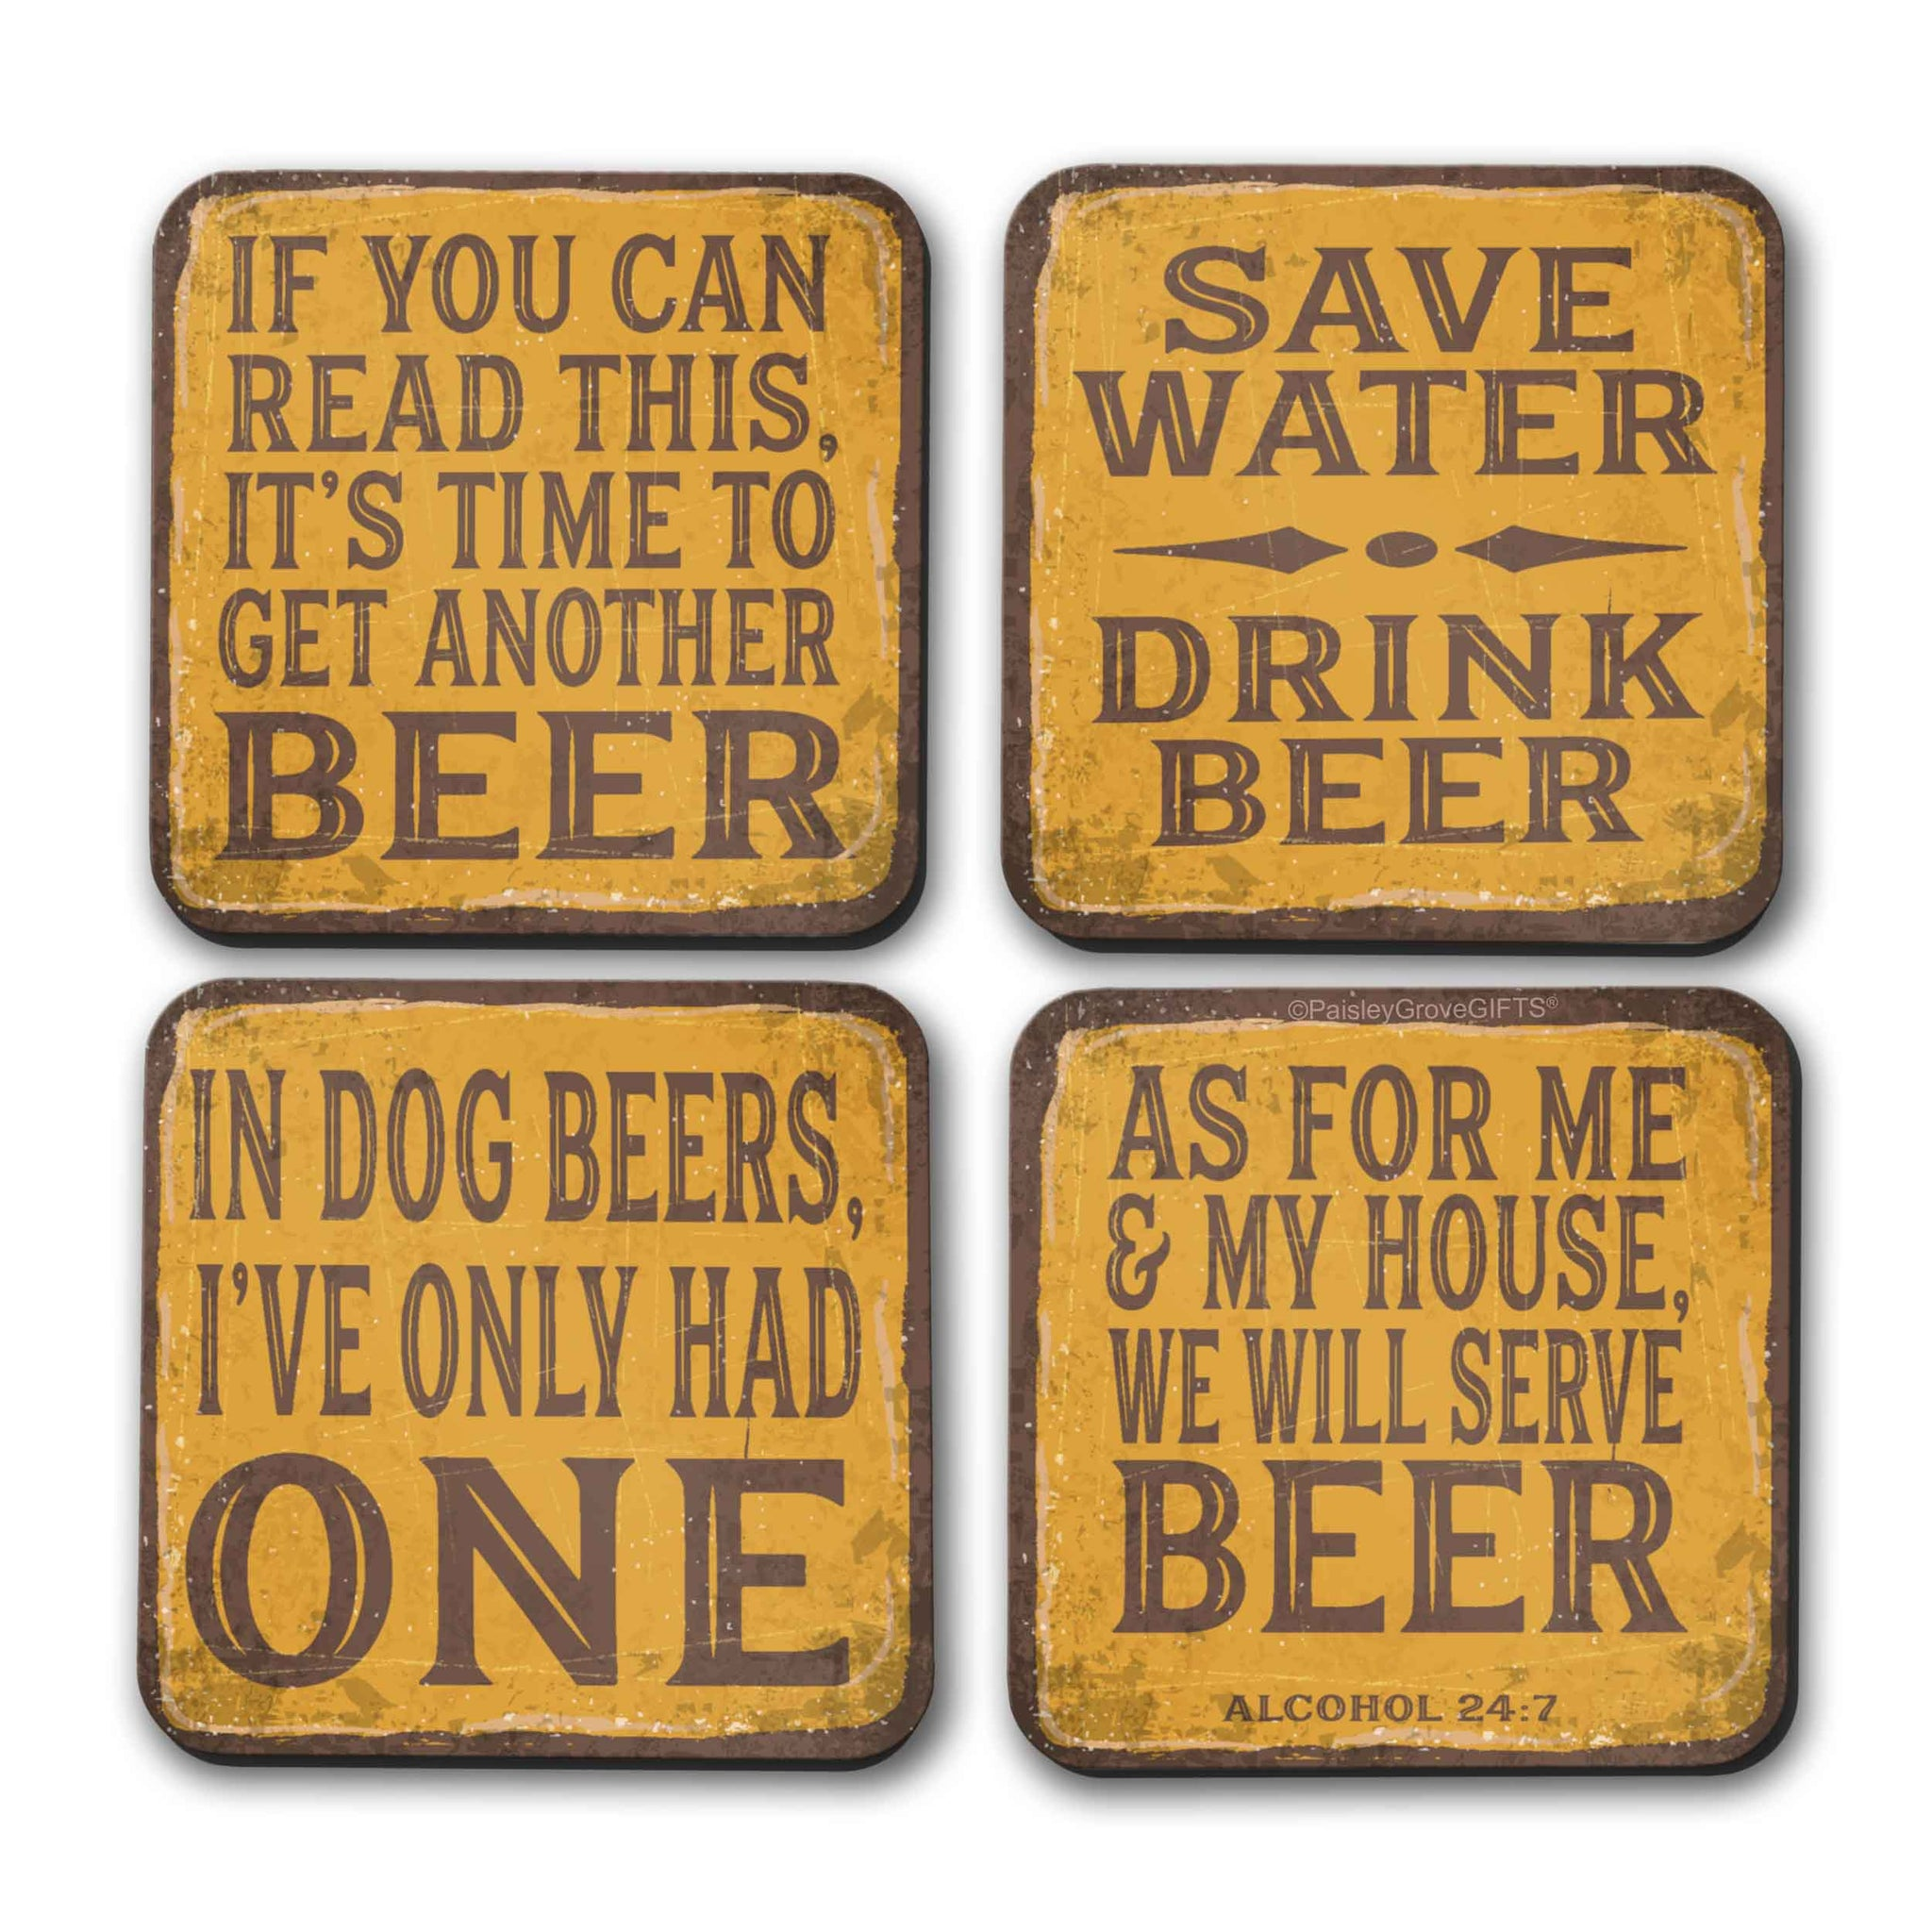 CopyrightPaisleyGroveGIFTS S700adgh Vintage Inspired Yellow and Brown Funny Drink Coasters Set with Beer Theme